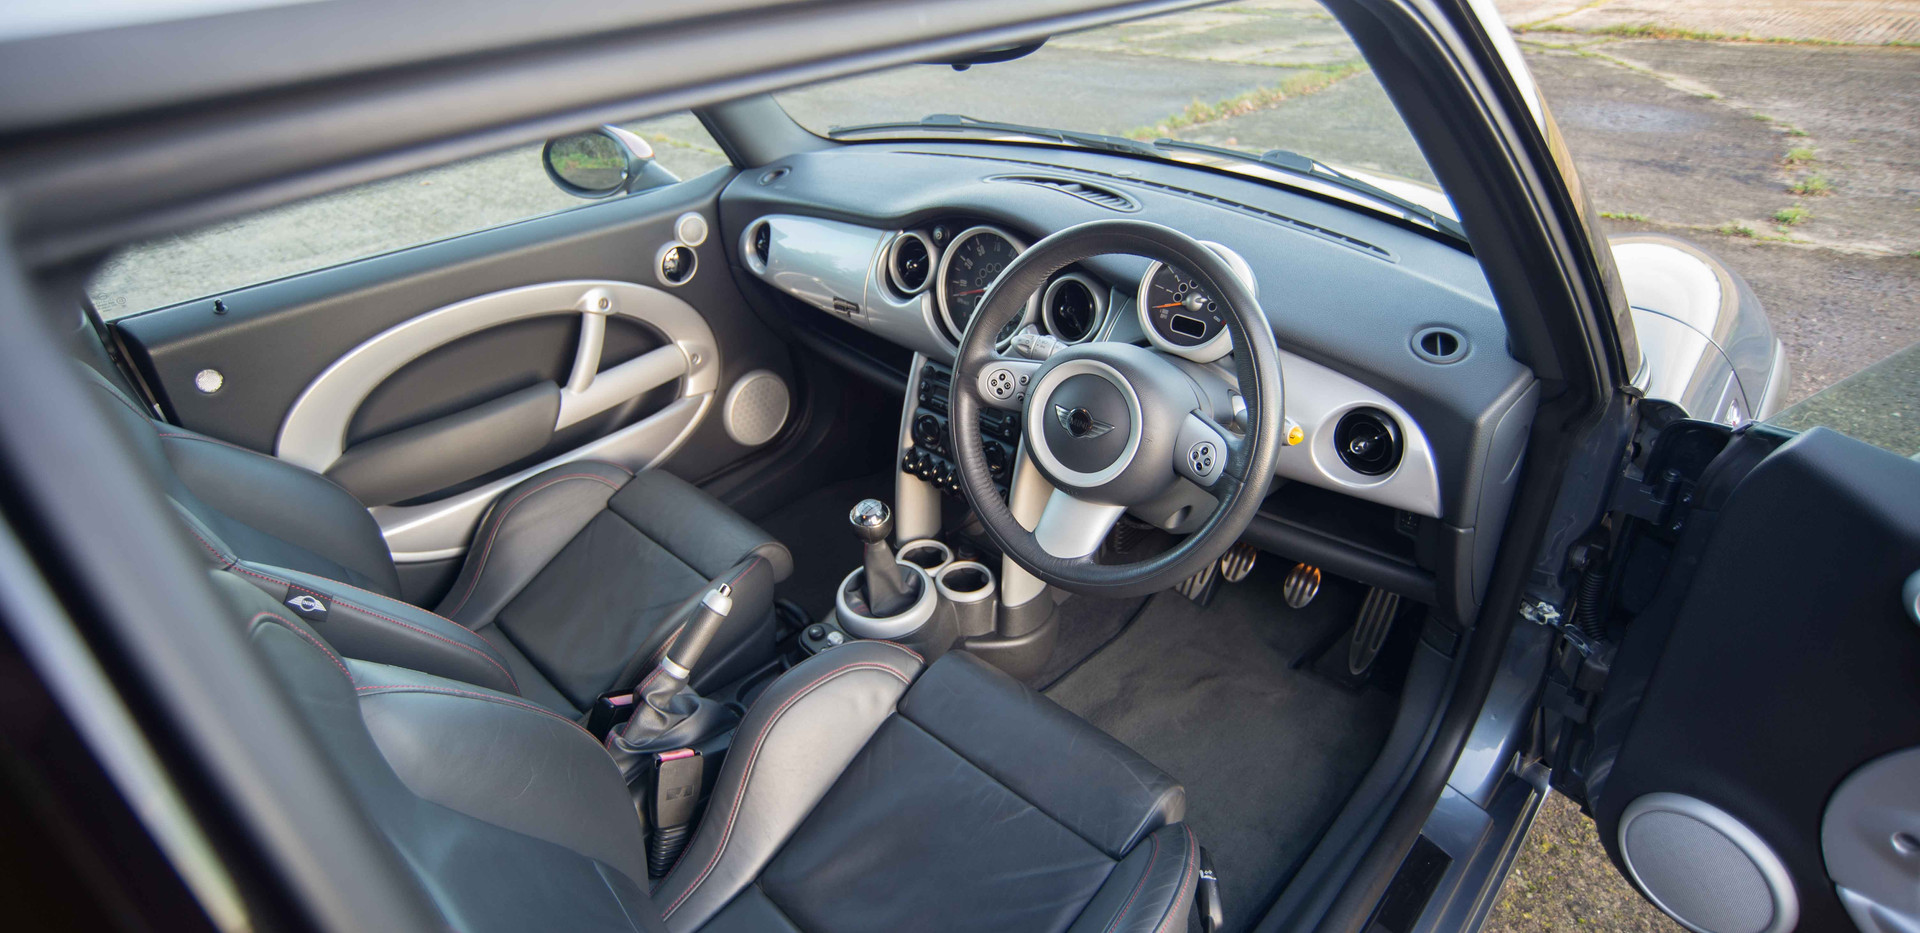 MINI JCW GP For Sale UK London  (36 of 4